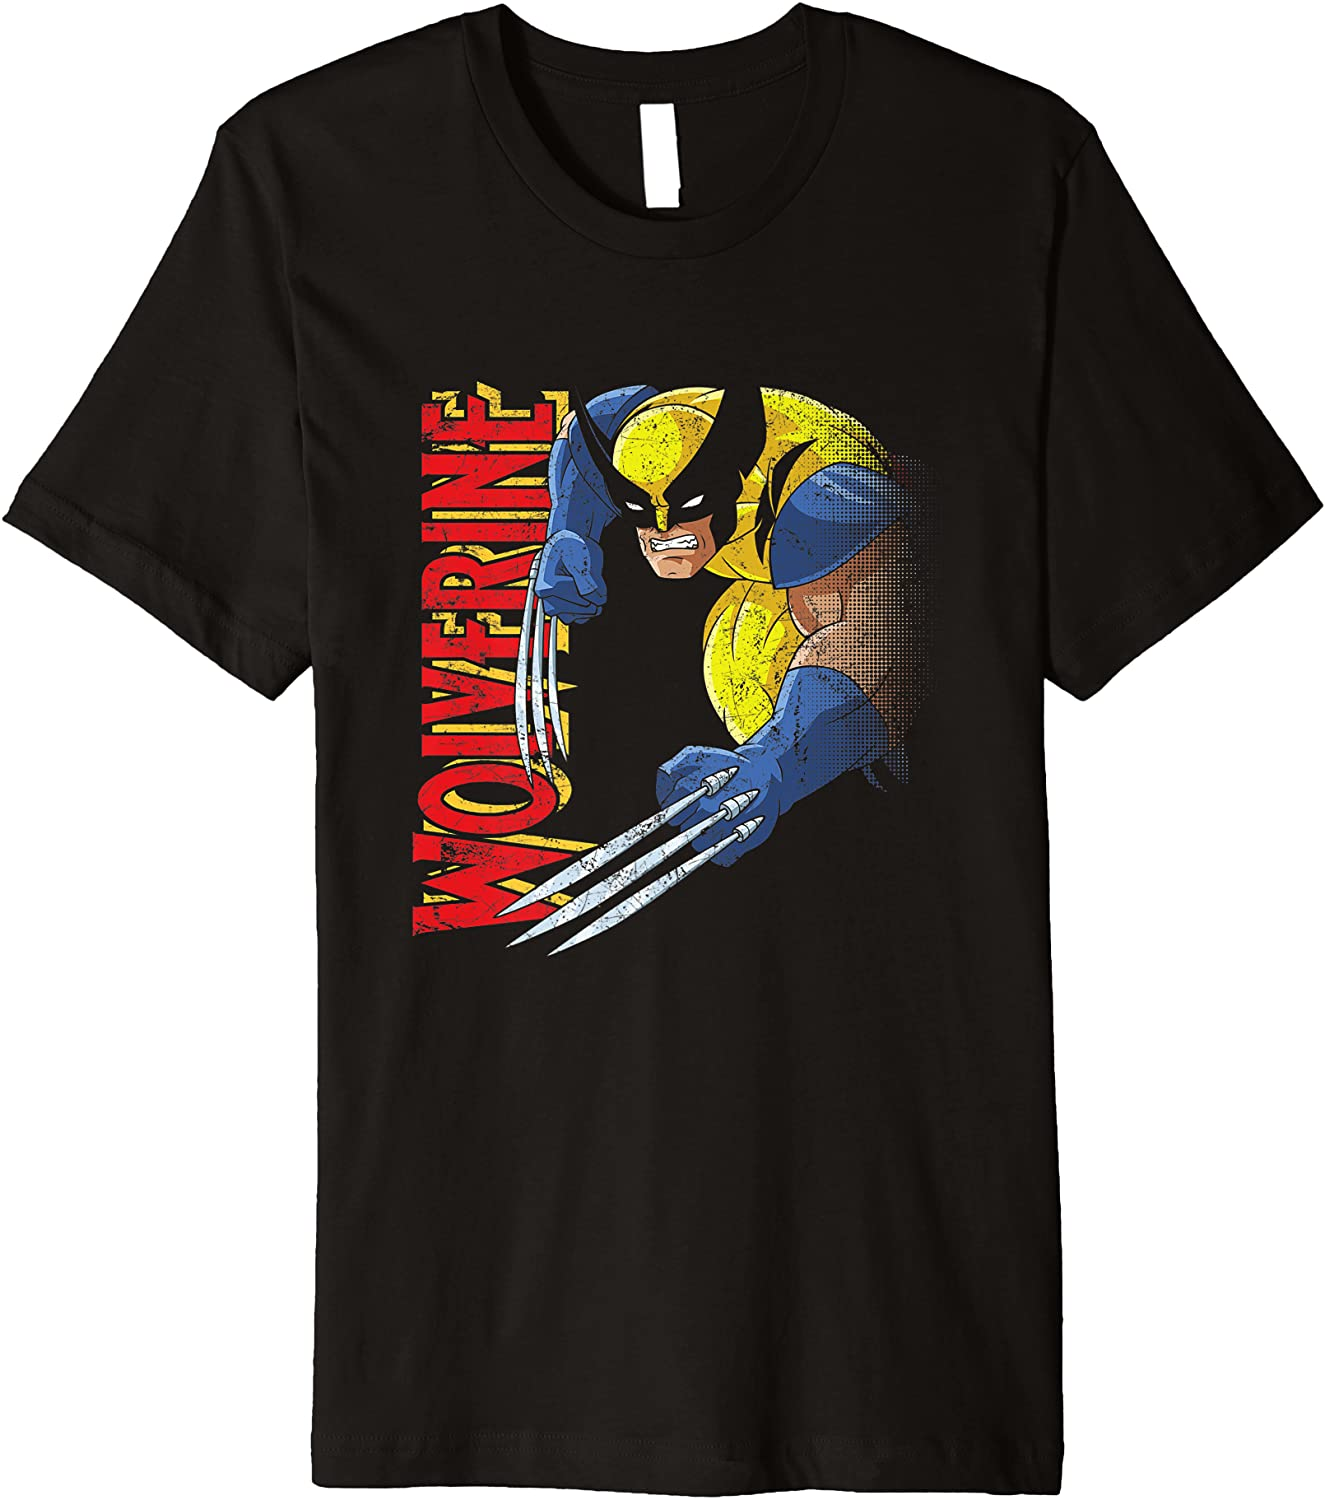 Marvel Super Courier shipping free shipping beauty product restock quality top X-Men Wolverine 90s Animated T-Shirt Premium Series